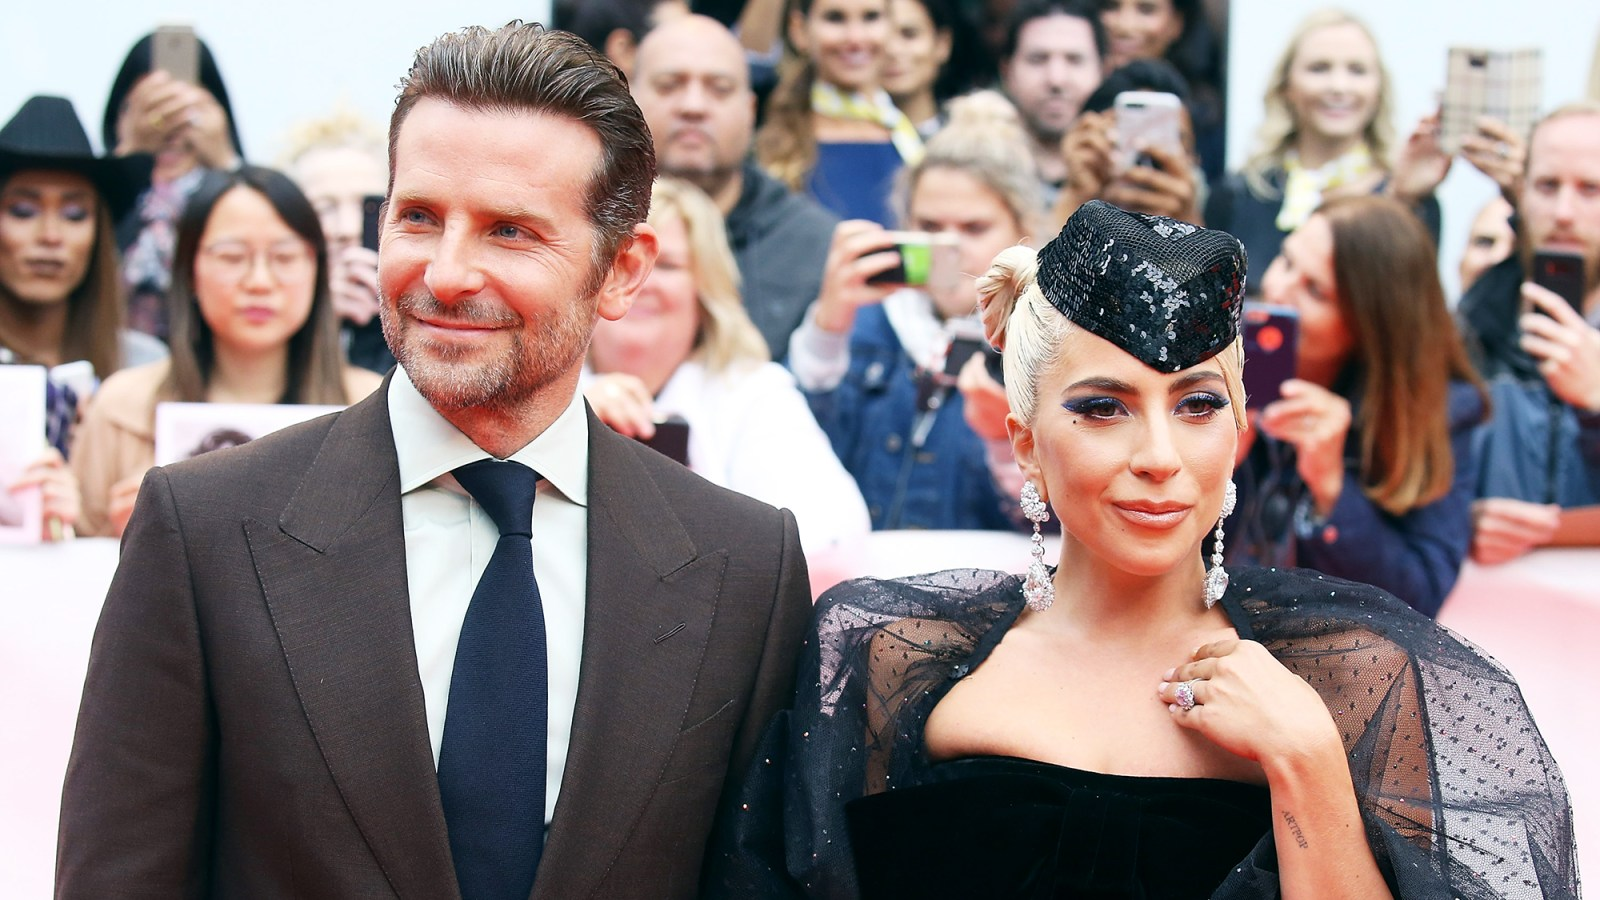 f3da855f285f1 Lady Gaga and Bradley Cooper Never Talked About Giving Their 'Star Is Born'  Characters a Baby